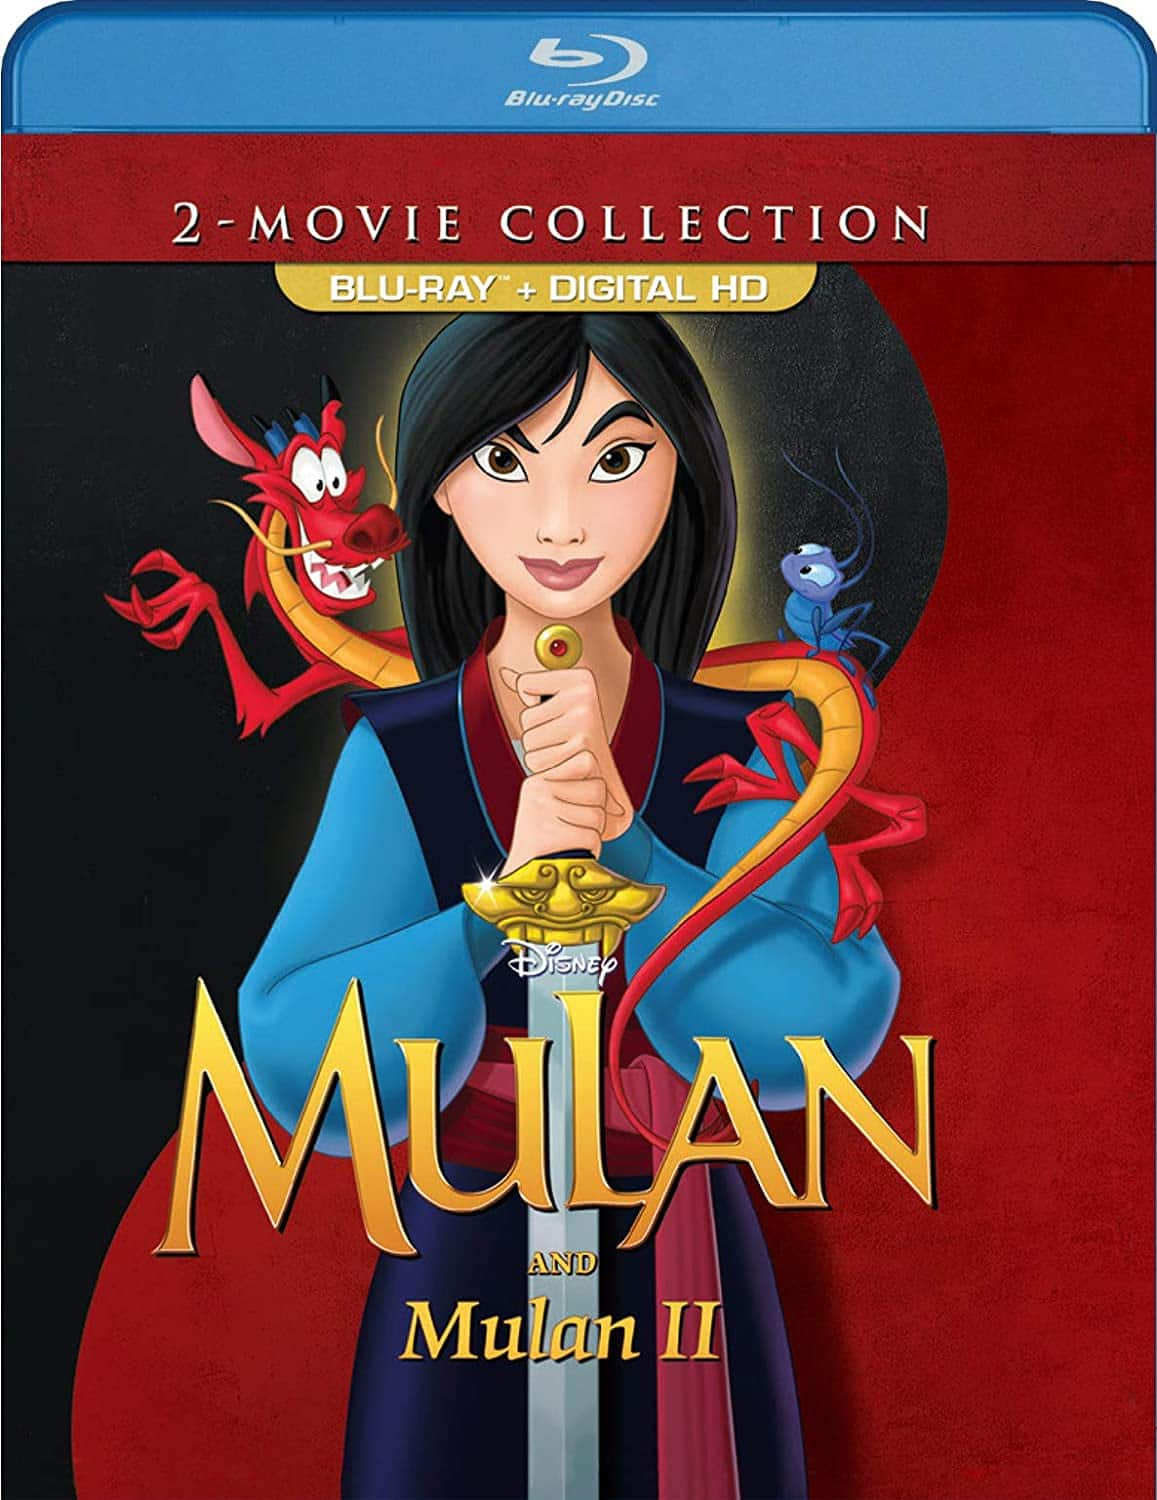 MULAN 2-movie collection [Blu-ray + Digital] $10.47 (Mulan and Mulan II)